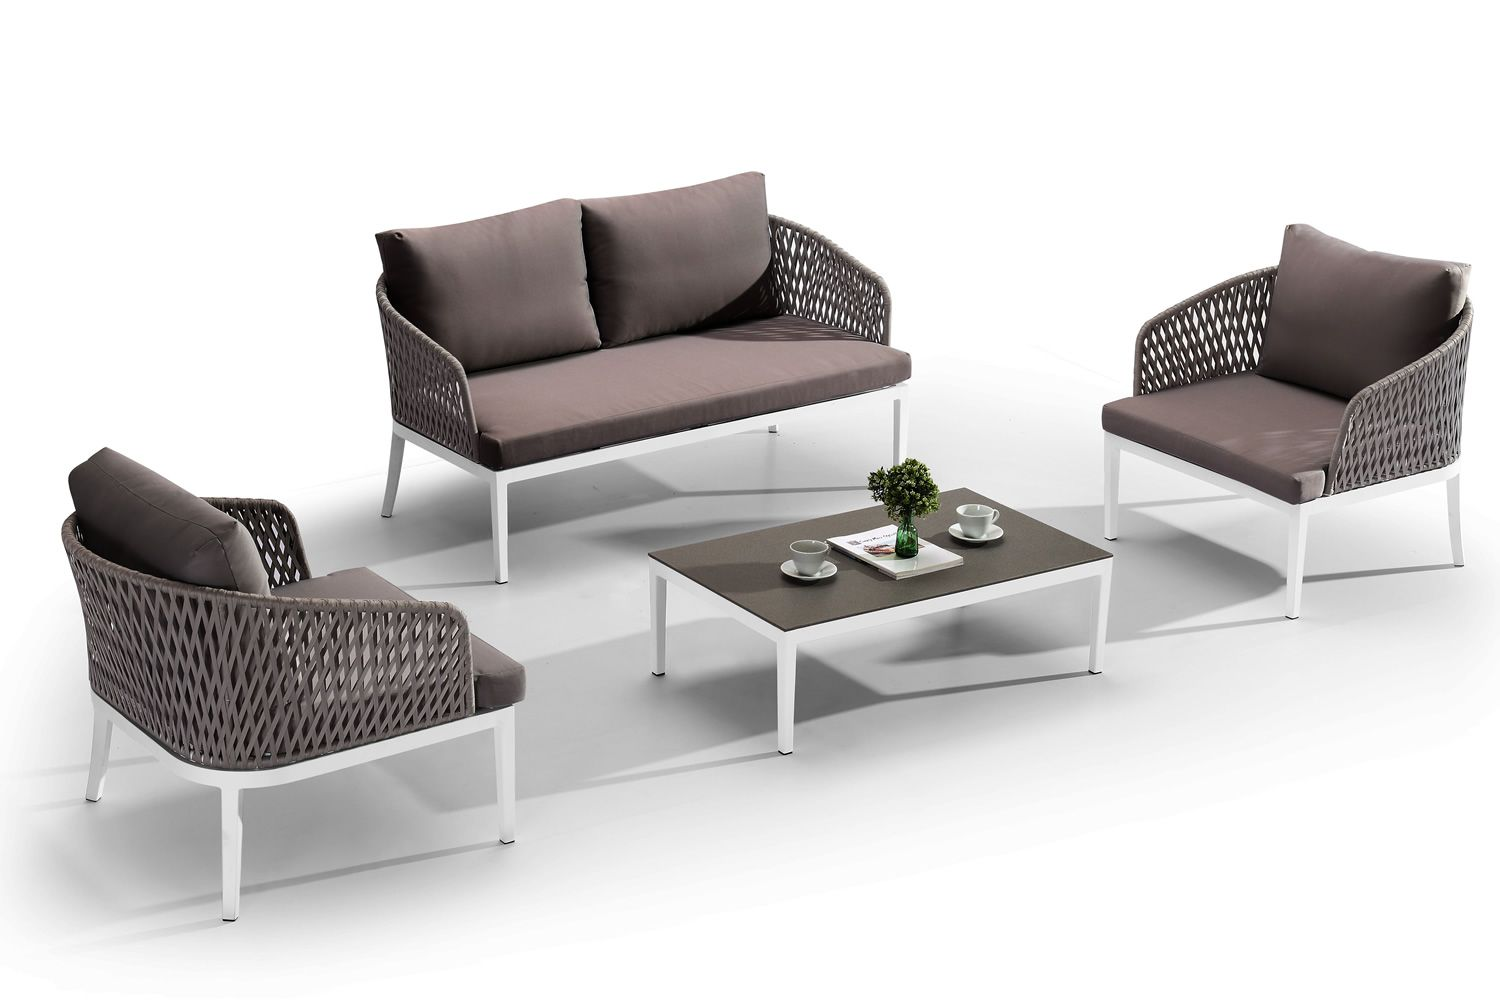 Outdoor set made of white aluminium and acrylic straps: one two-seater sofa, two armchairs, one coffee table with glass top